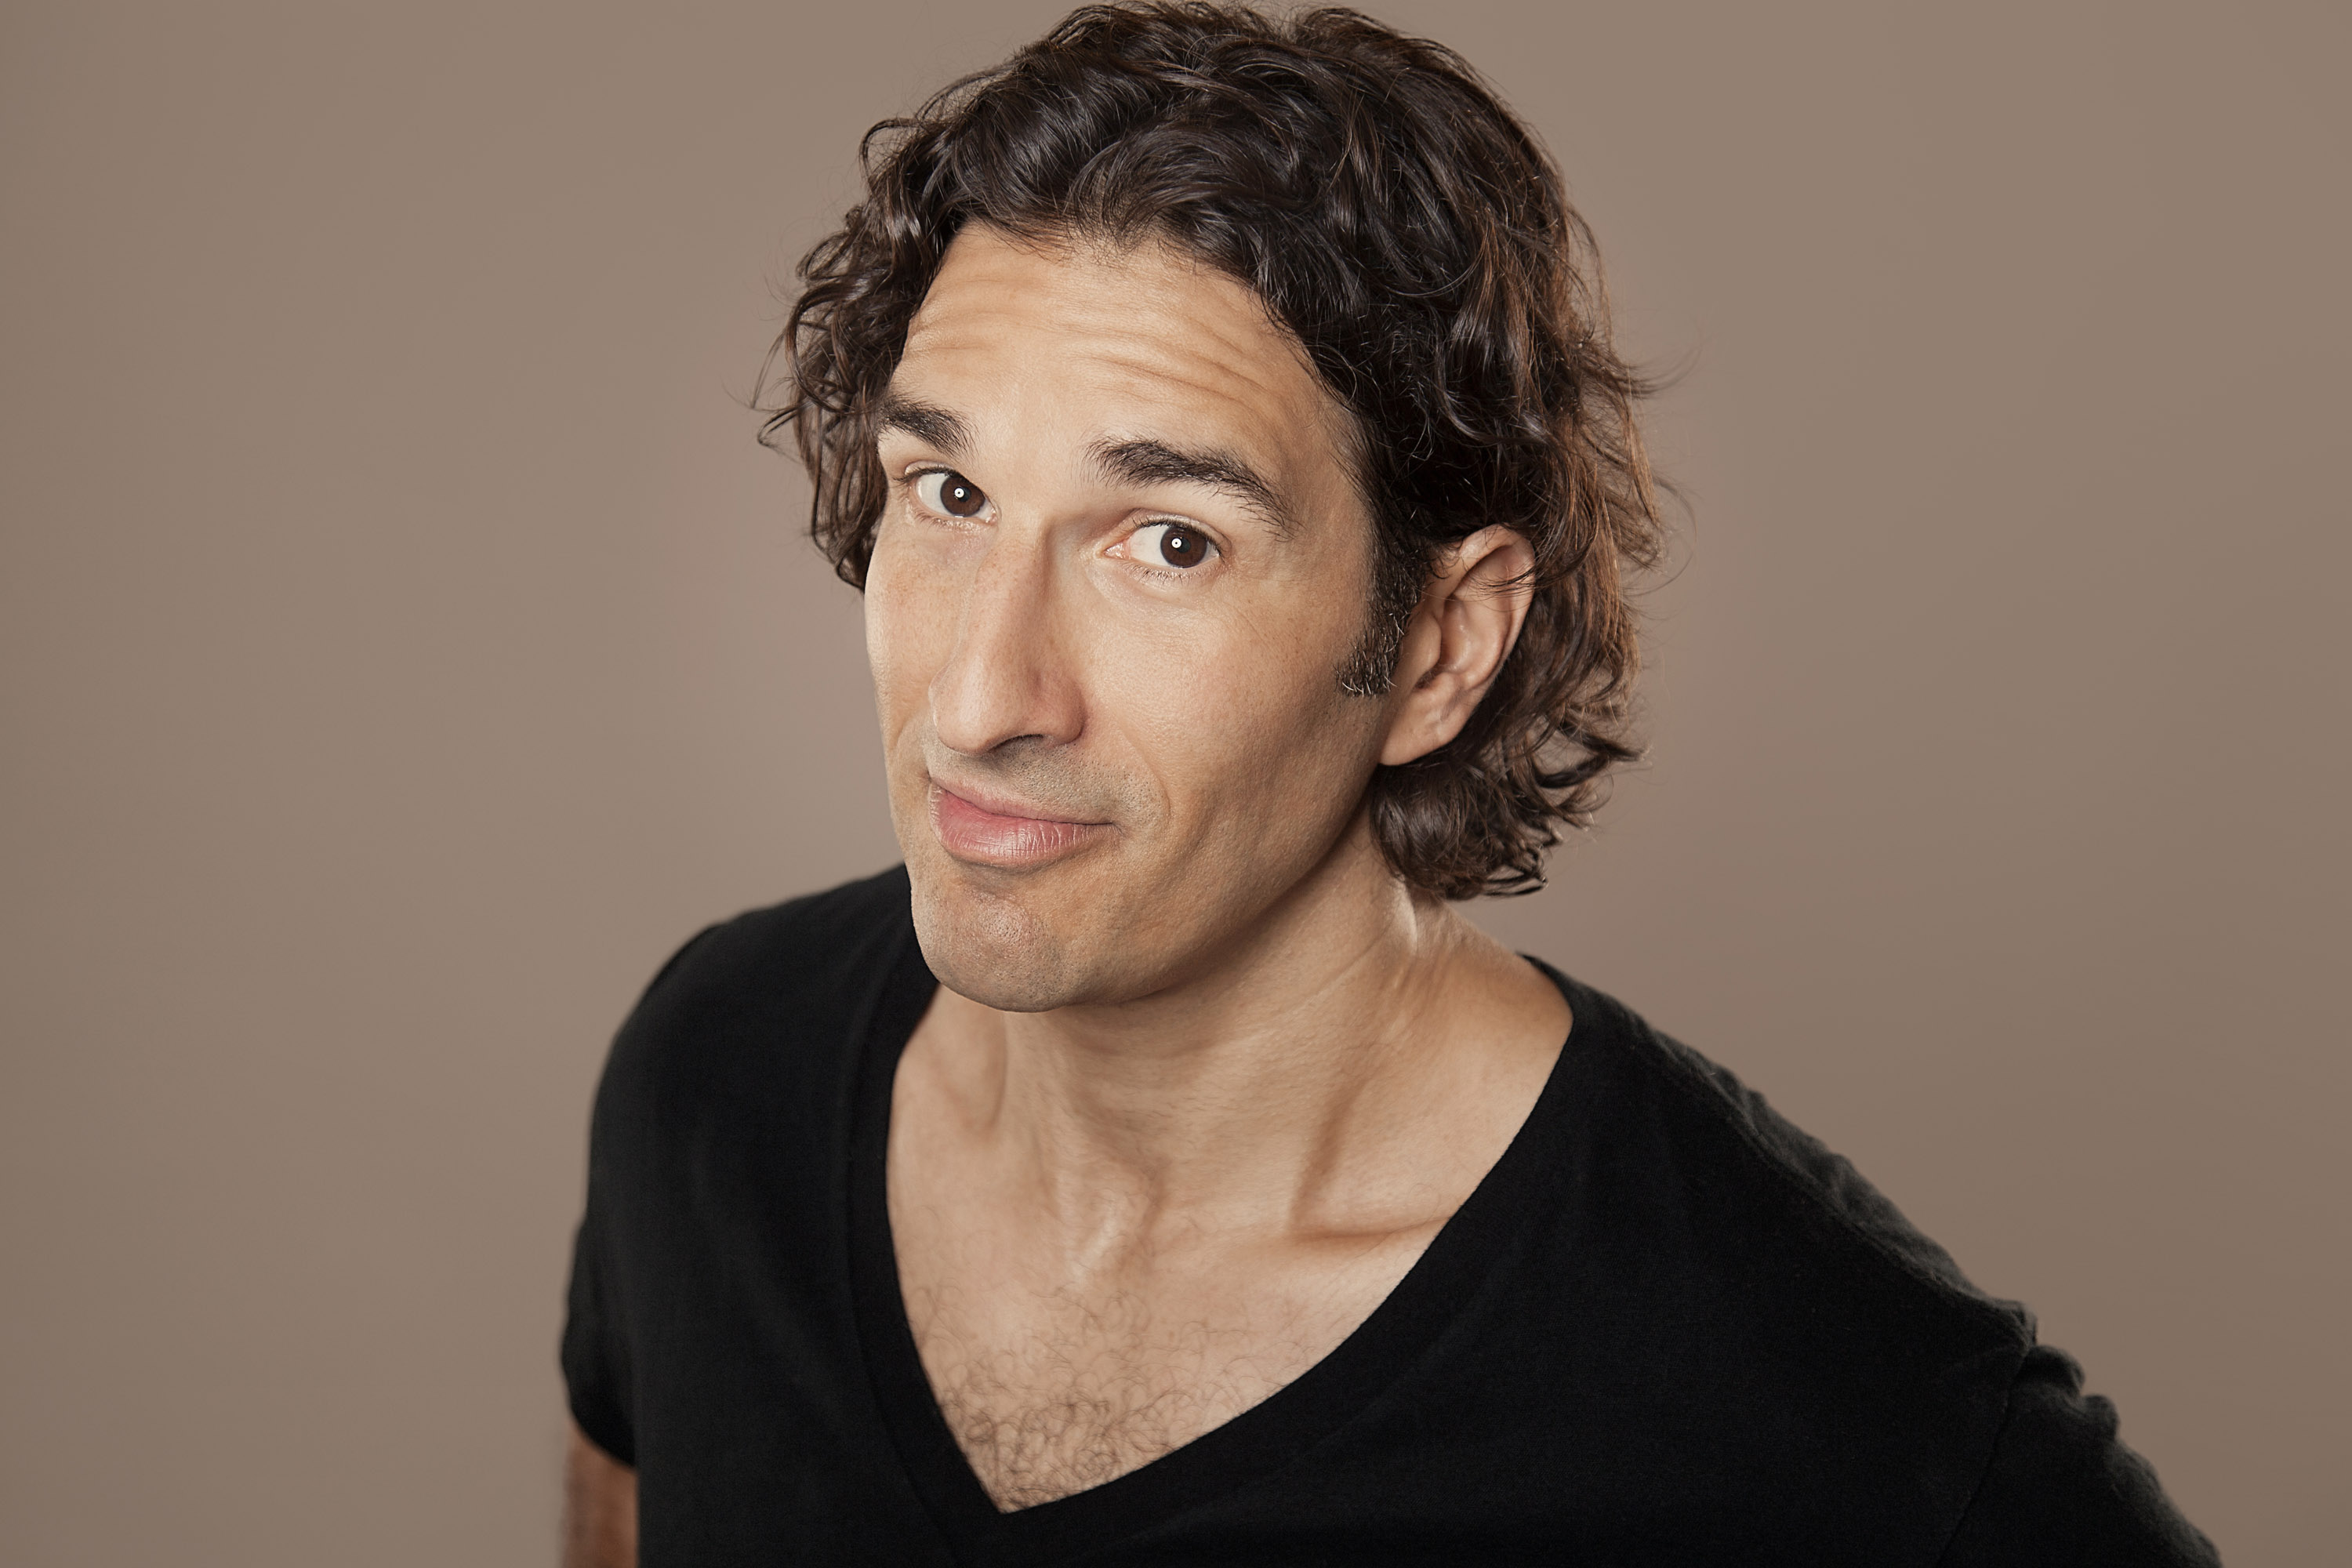 Gary Gulman Net Worth